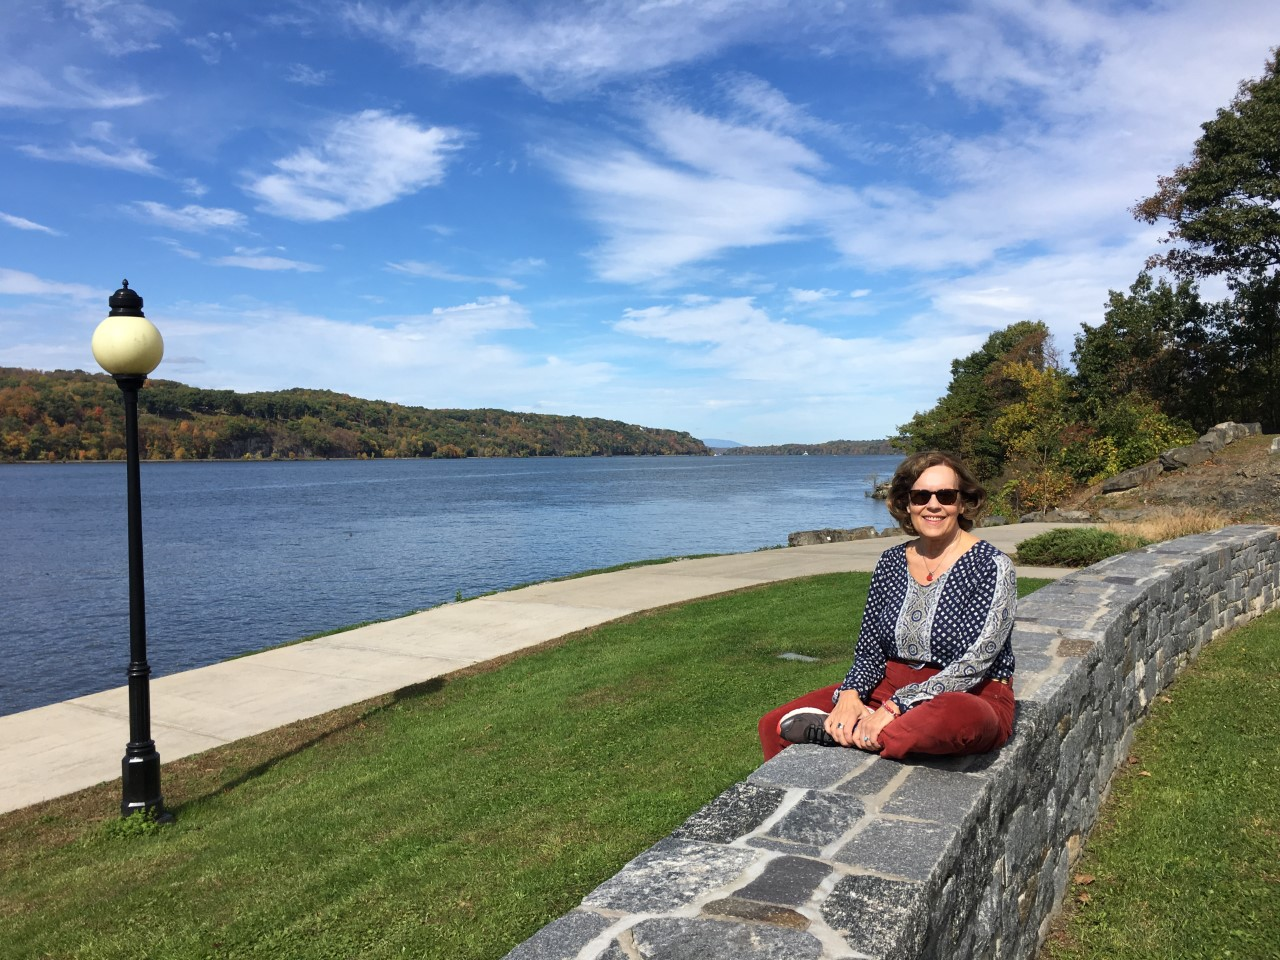 at Marist College on the Hudson, Oct. 12, 2019